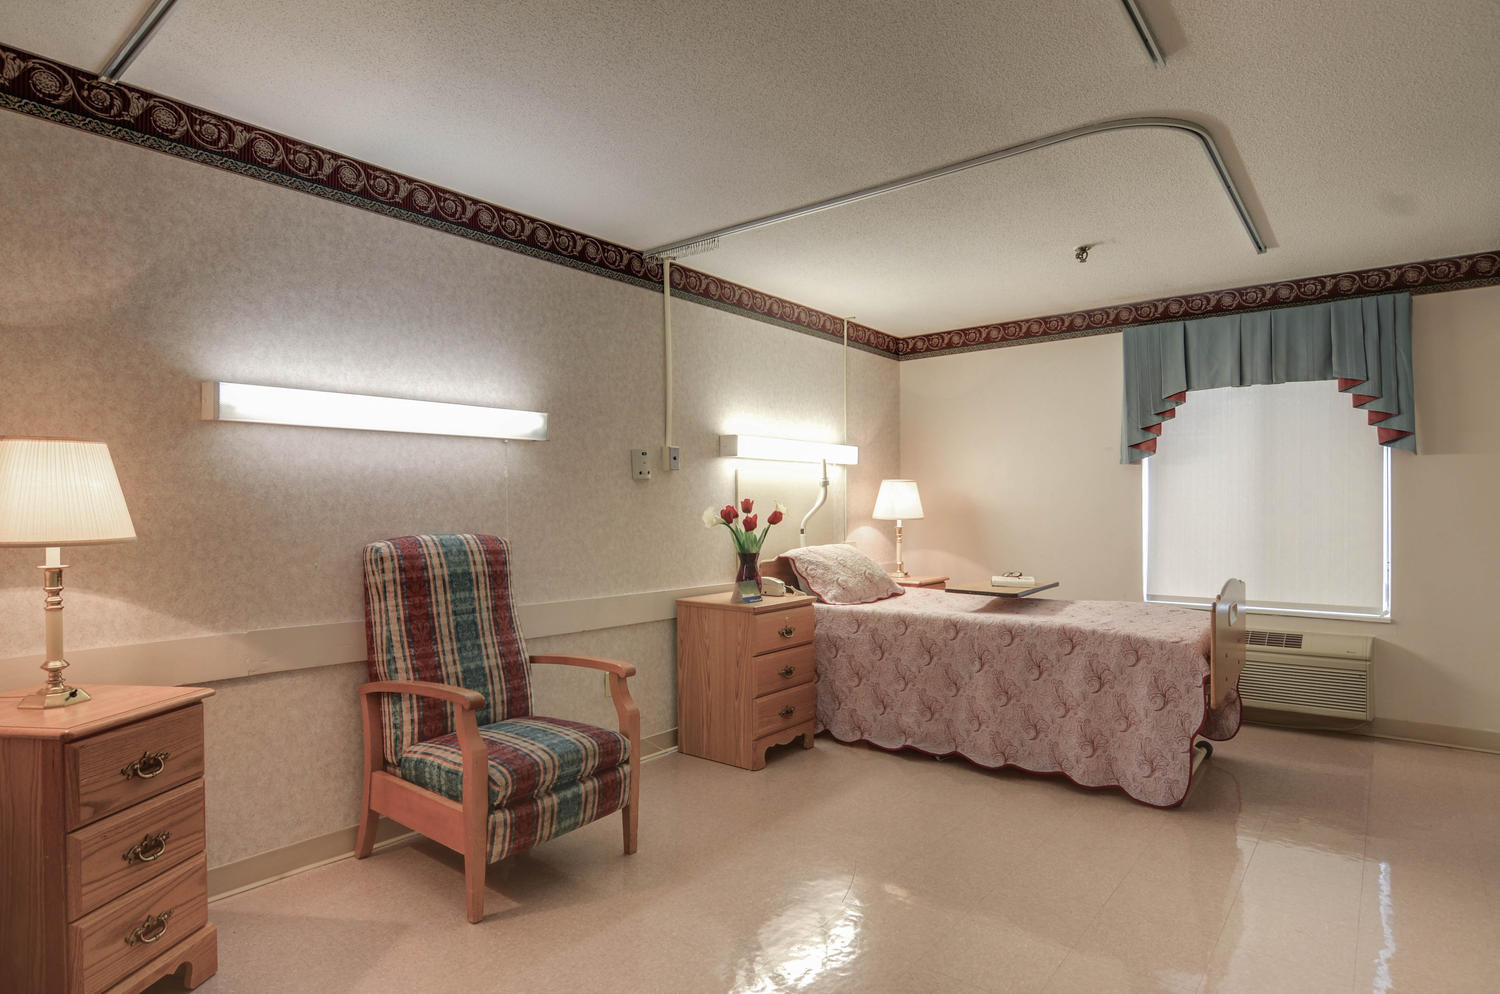 Stonerise Beckley skilled nursing home and transitional care facility patient room